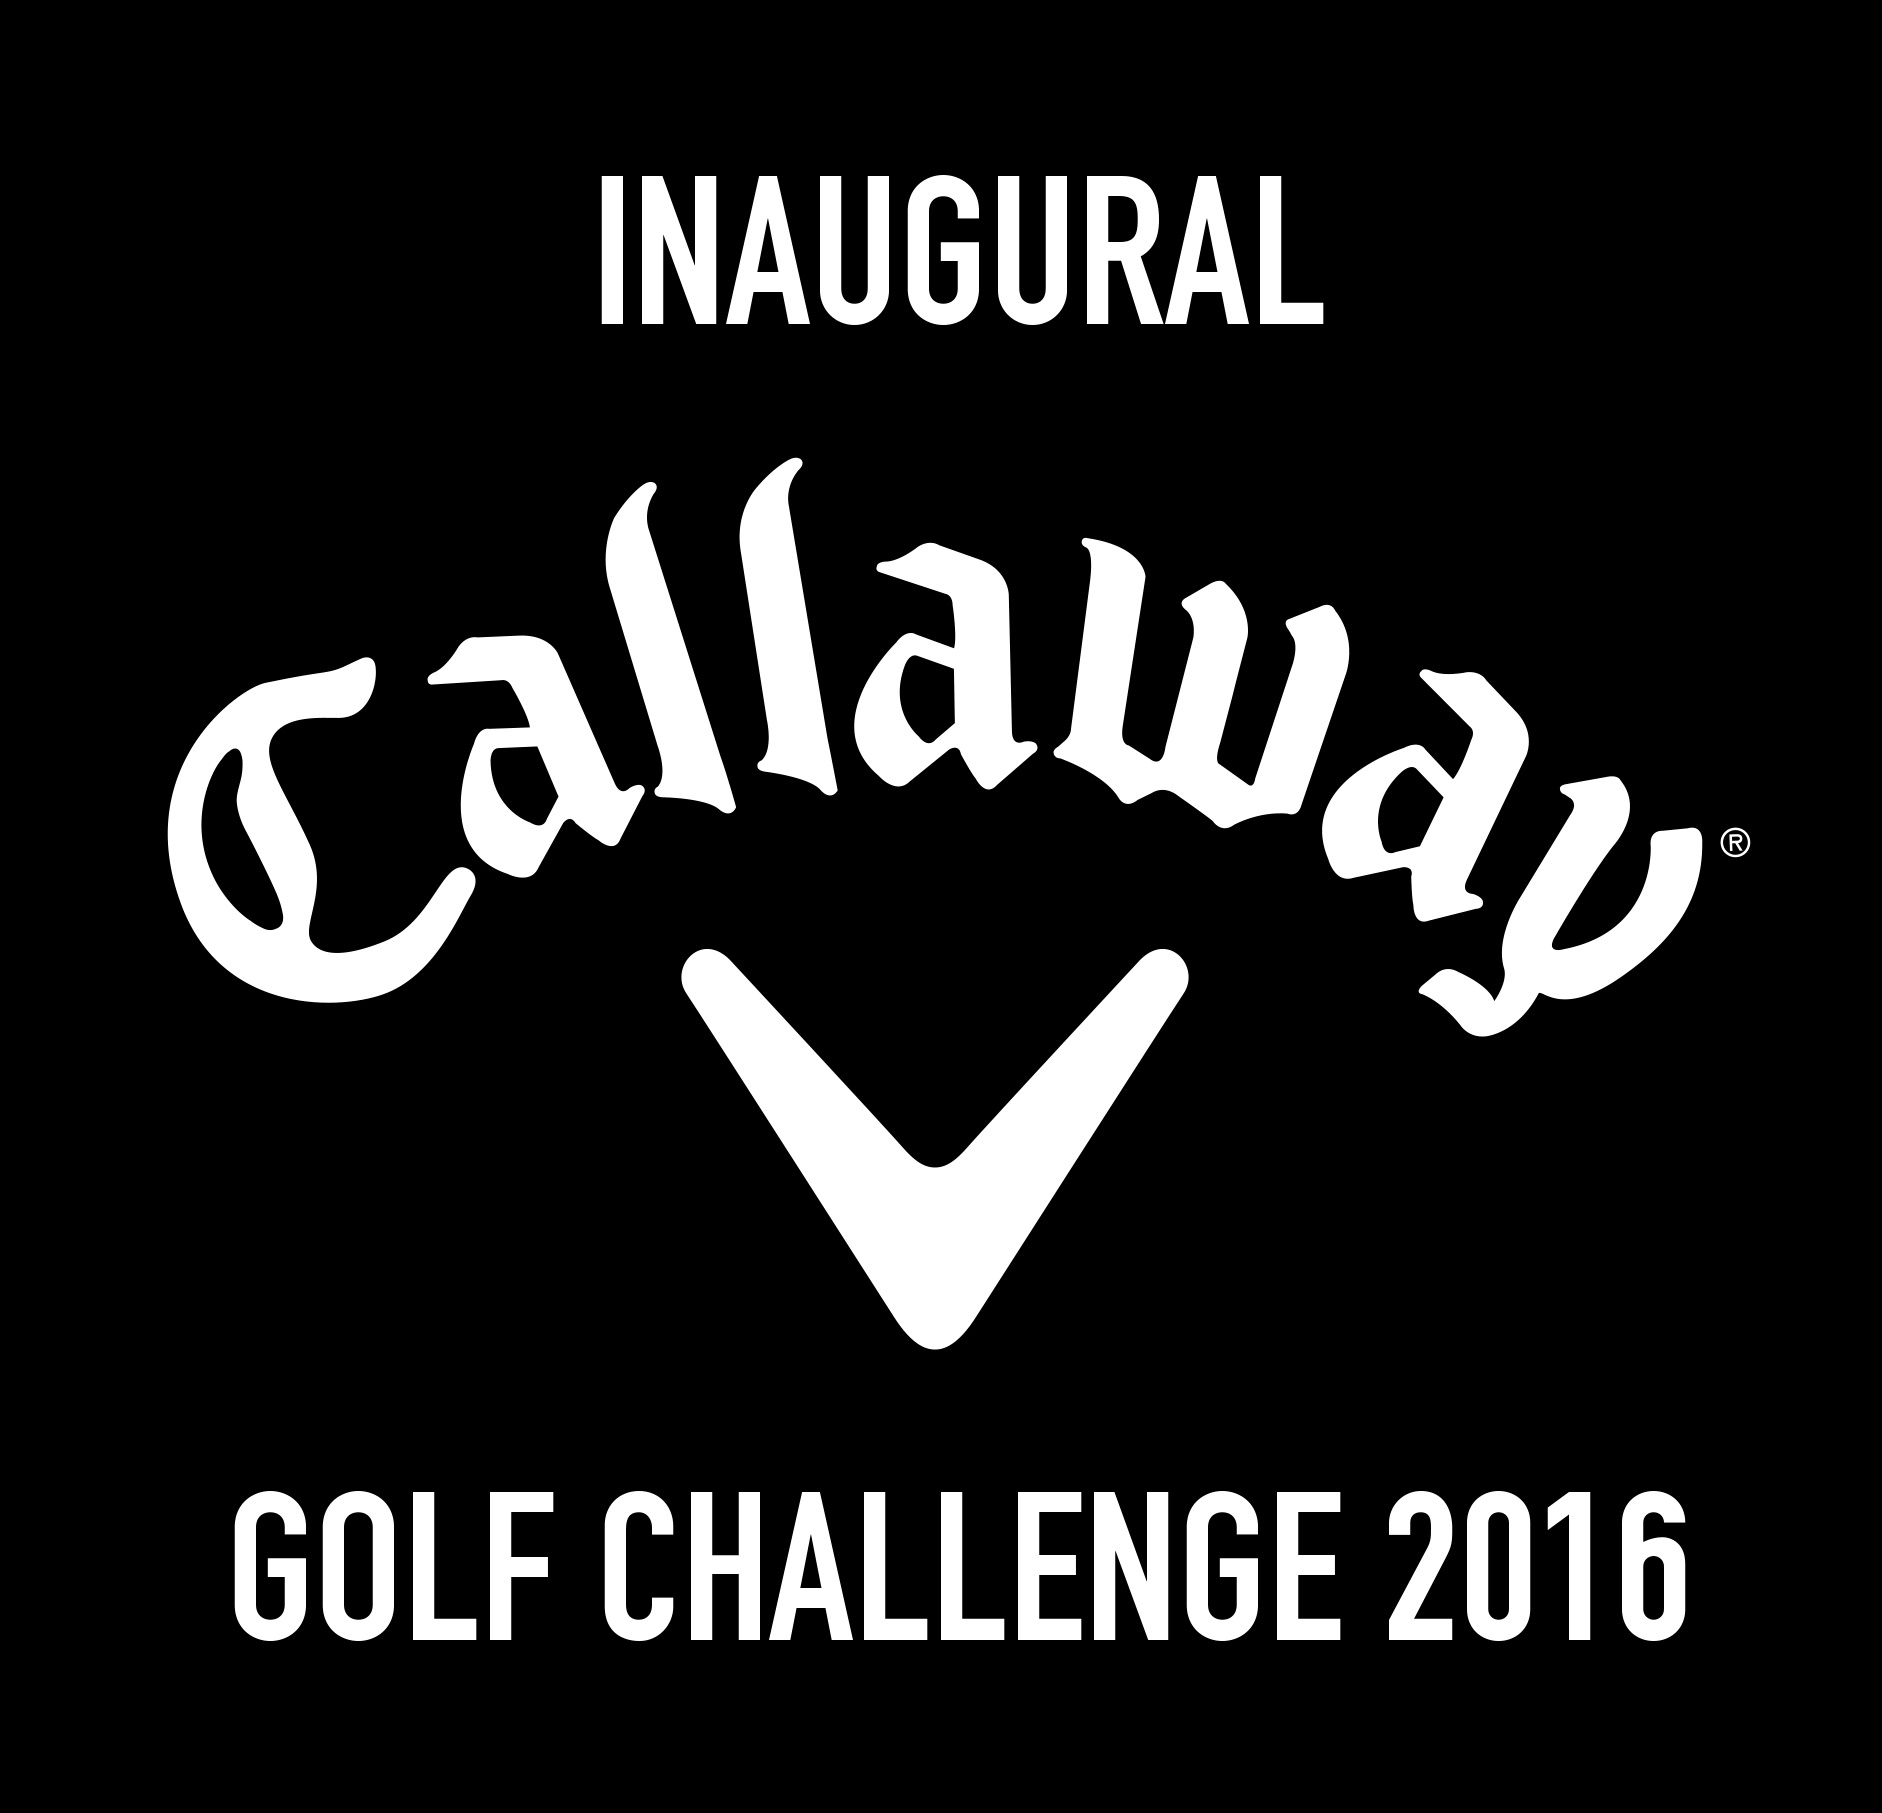 Inaugural Callaway Golf Challenge 2016 Article cover photo